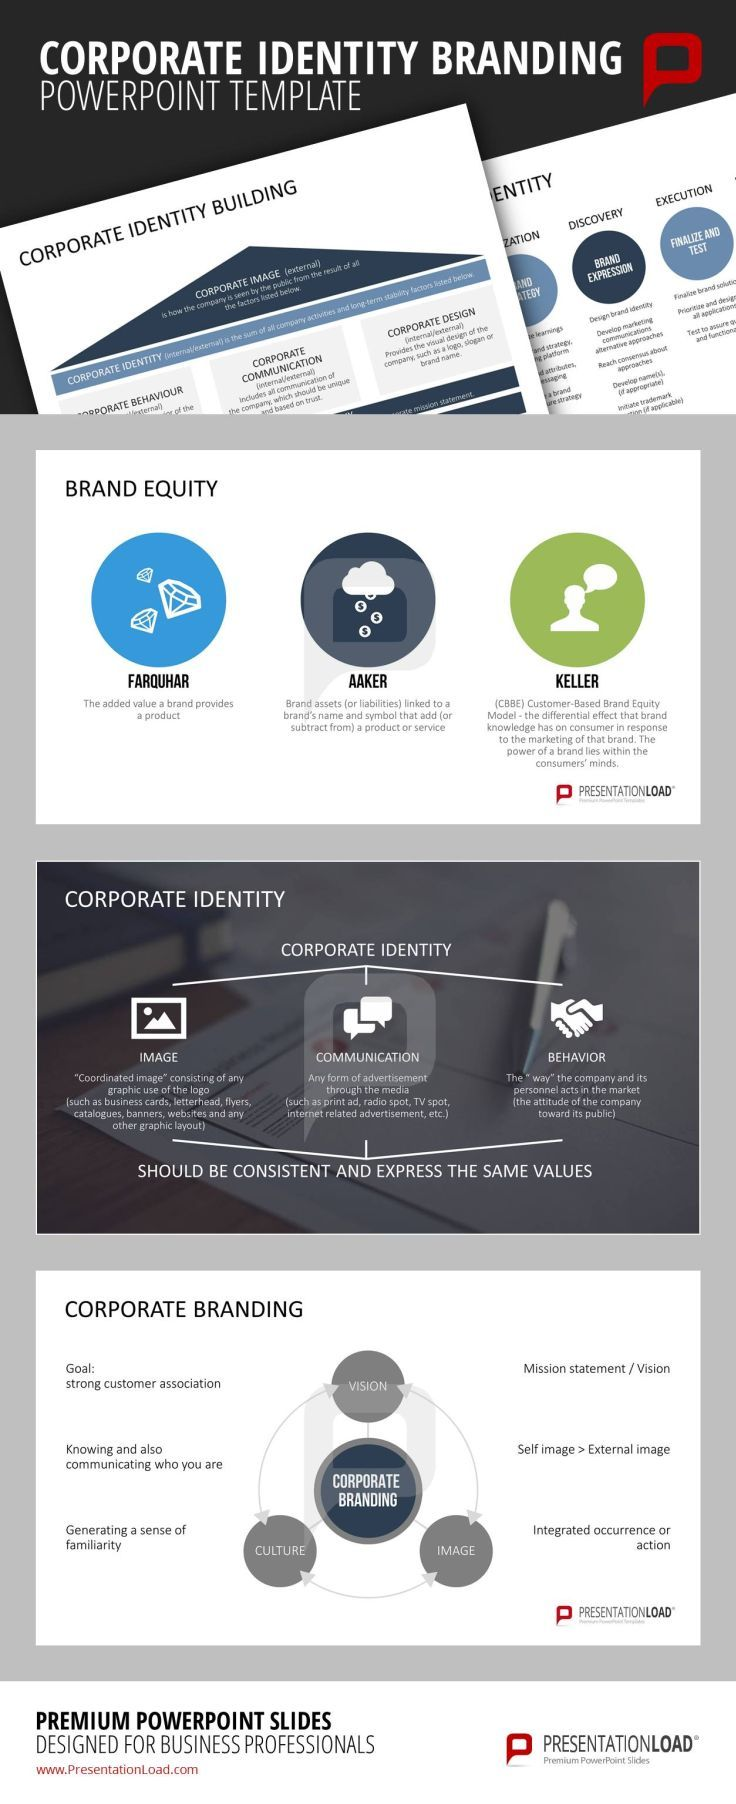 Visualize your corporate image and present your brand with the Corporate Identity/ Branding templates for PowerPoint.